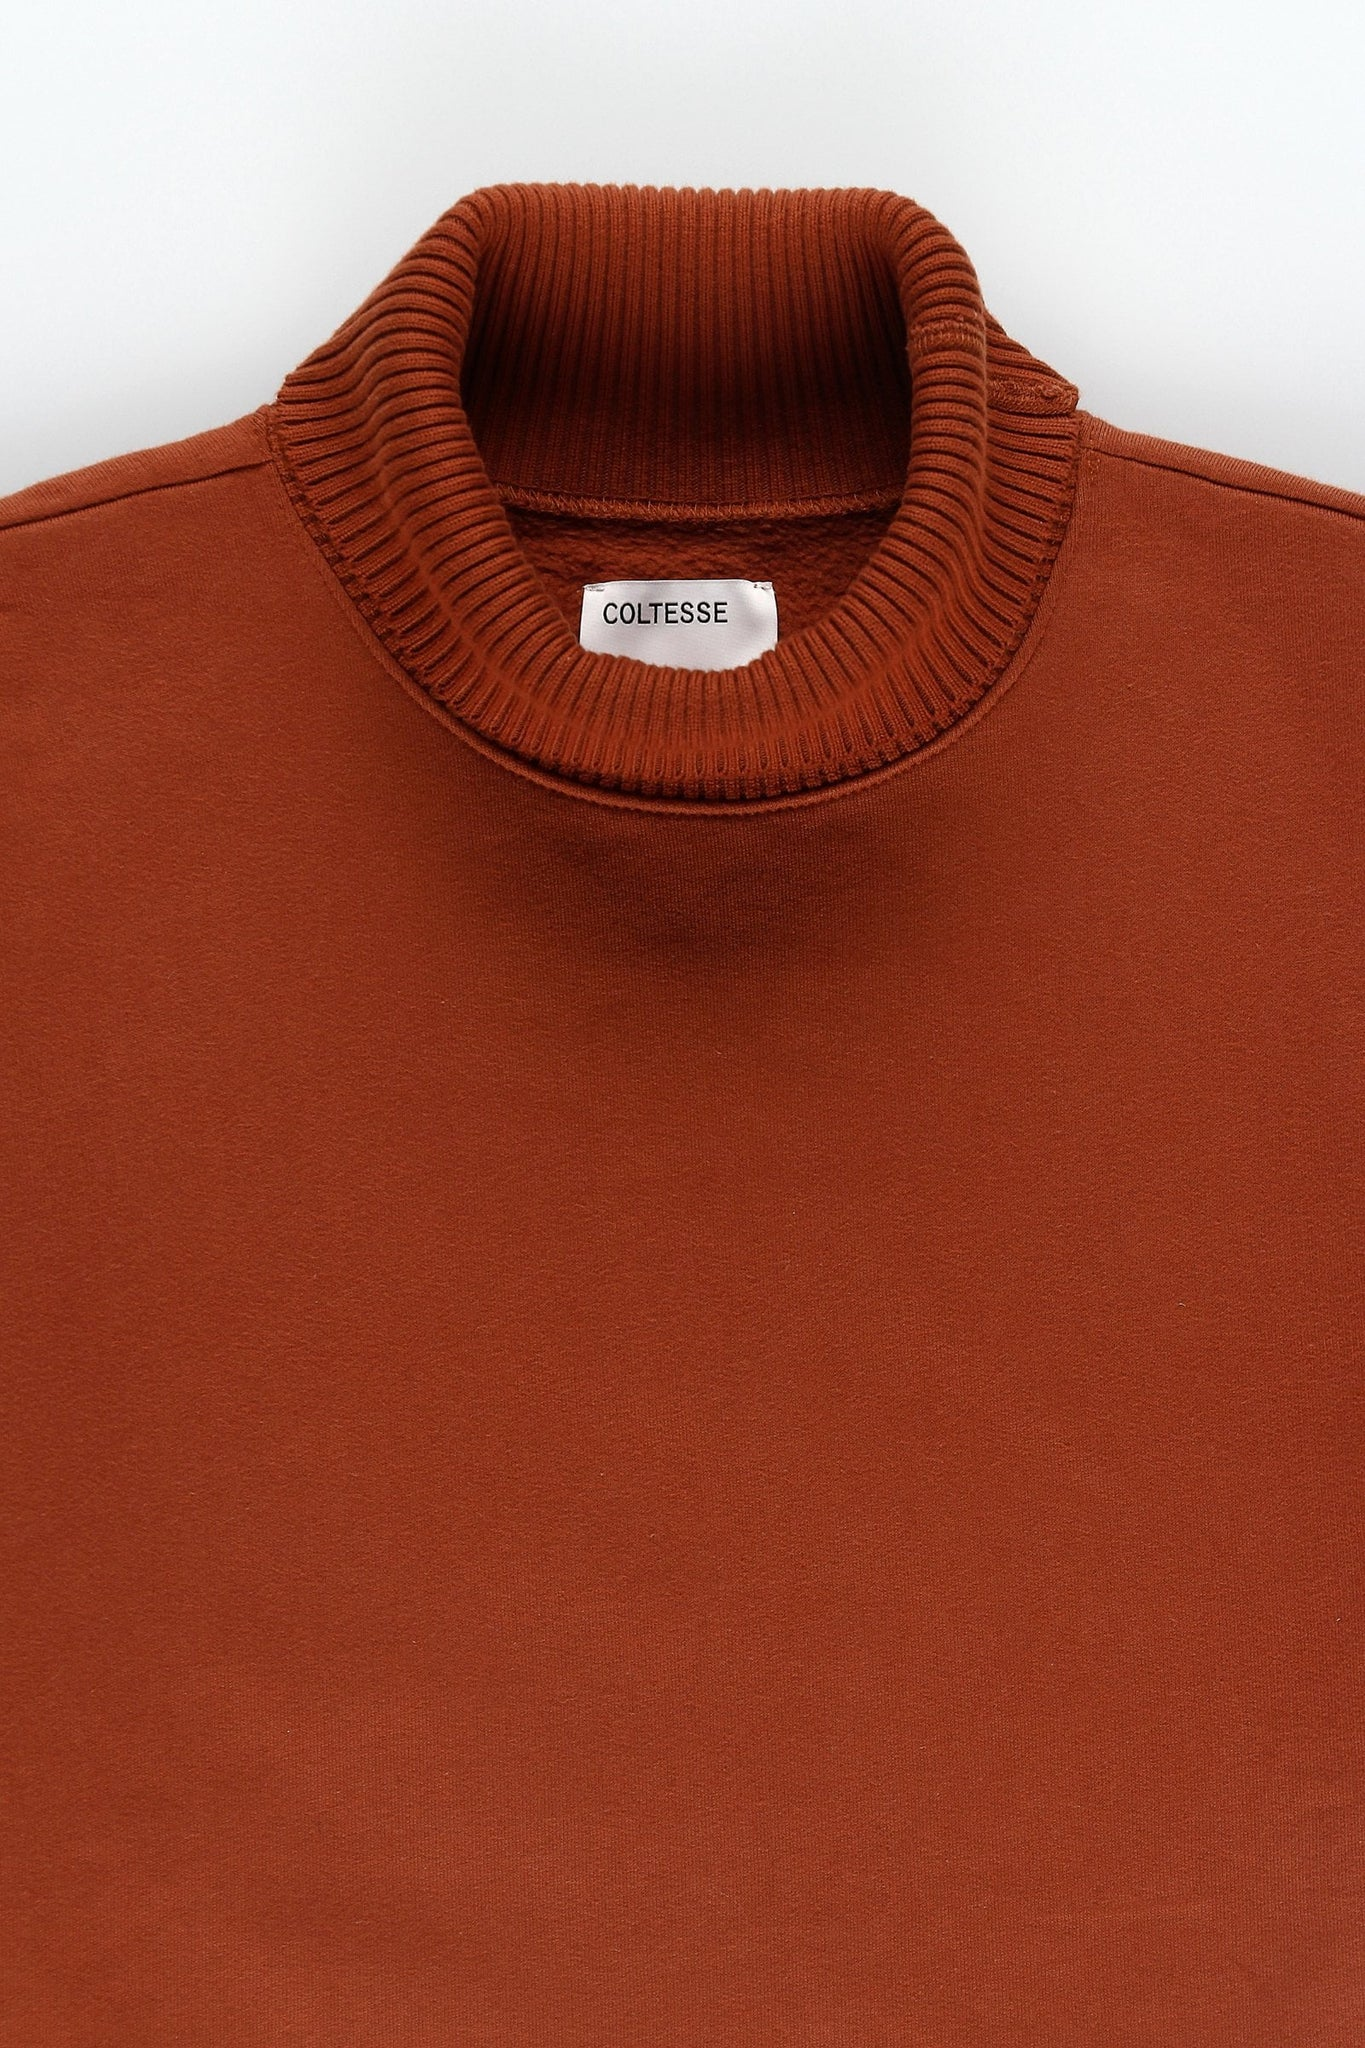 Oversized cotton turtle neck - red brown